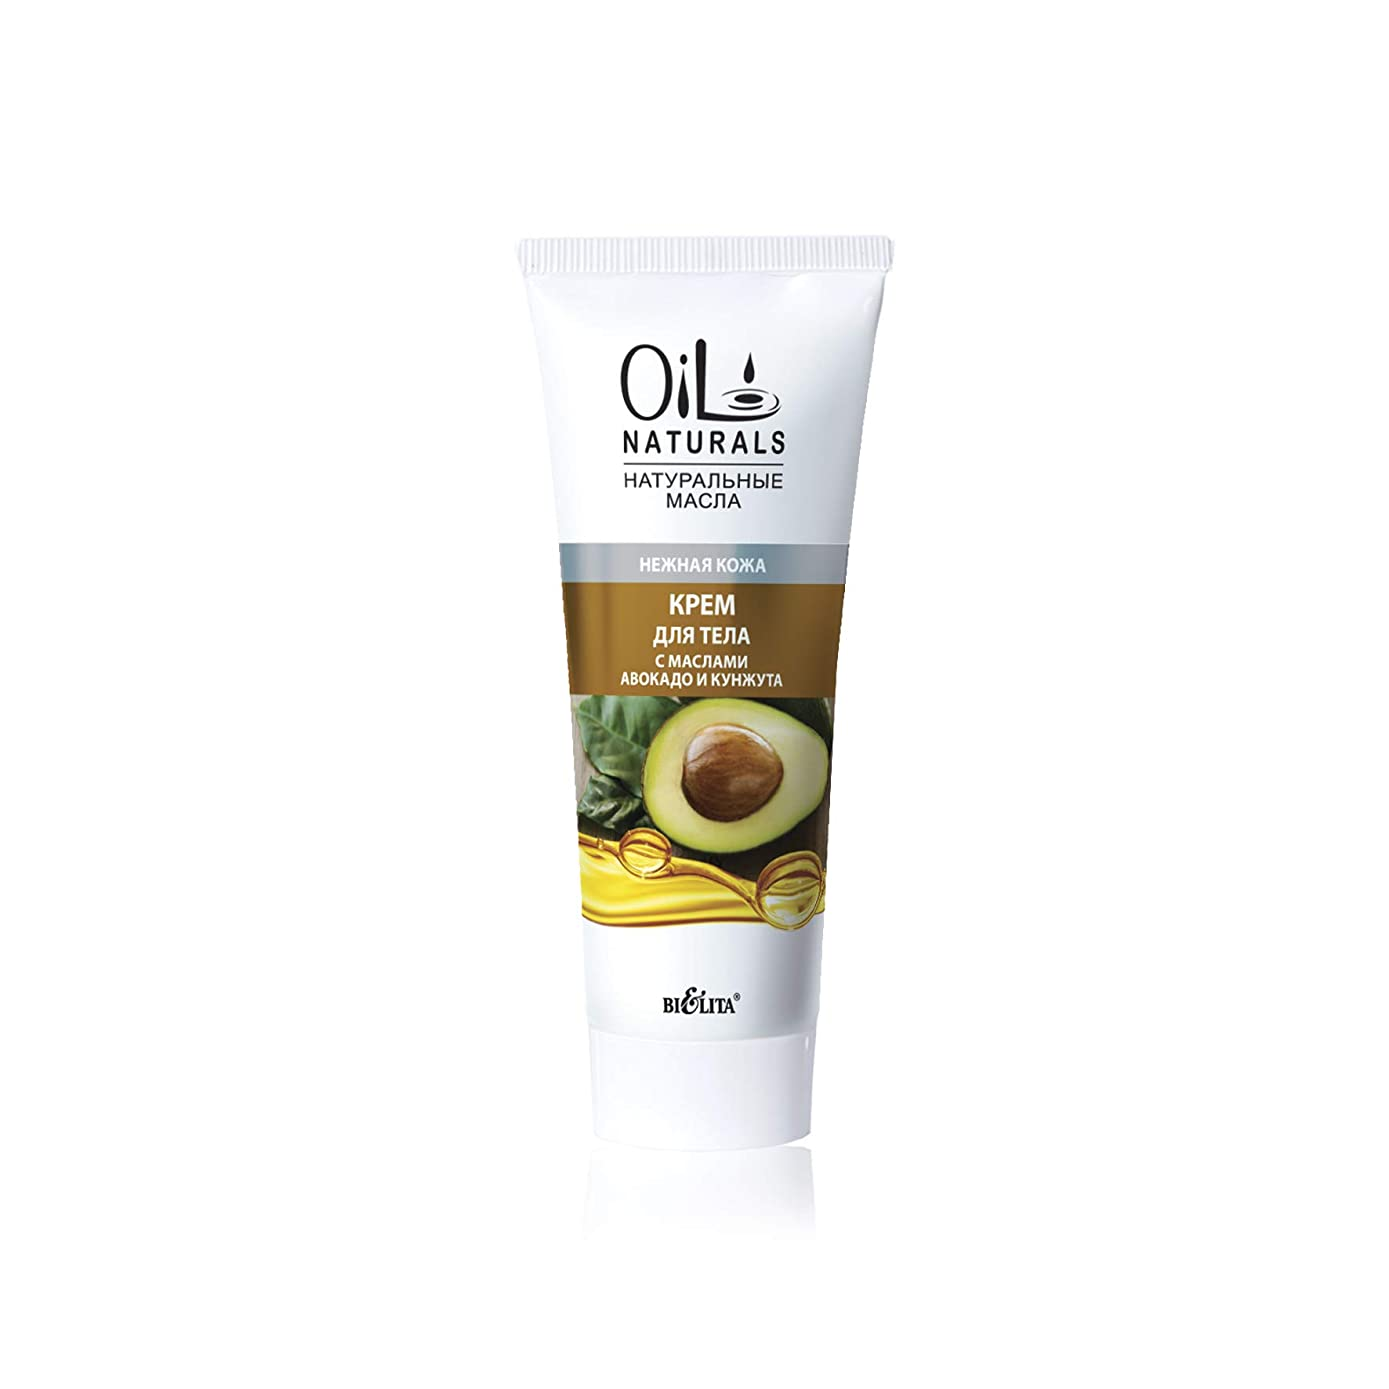 小道フルーツ野菜ロケットBielita & Vitex | Oil Naturals Line | Moisturizing Body Cream for Delicate Skin, 200 ml | Avocado Oil, Silk Proteins, Sesame Oil, Vitamins